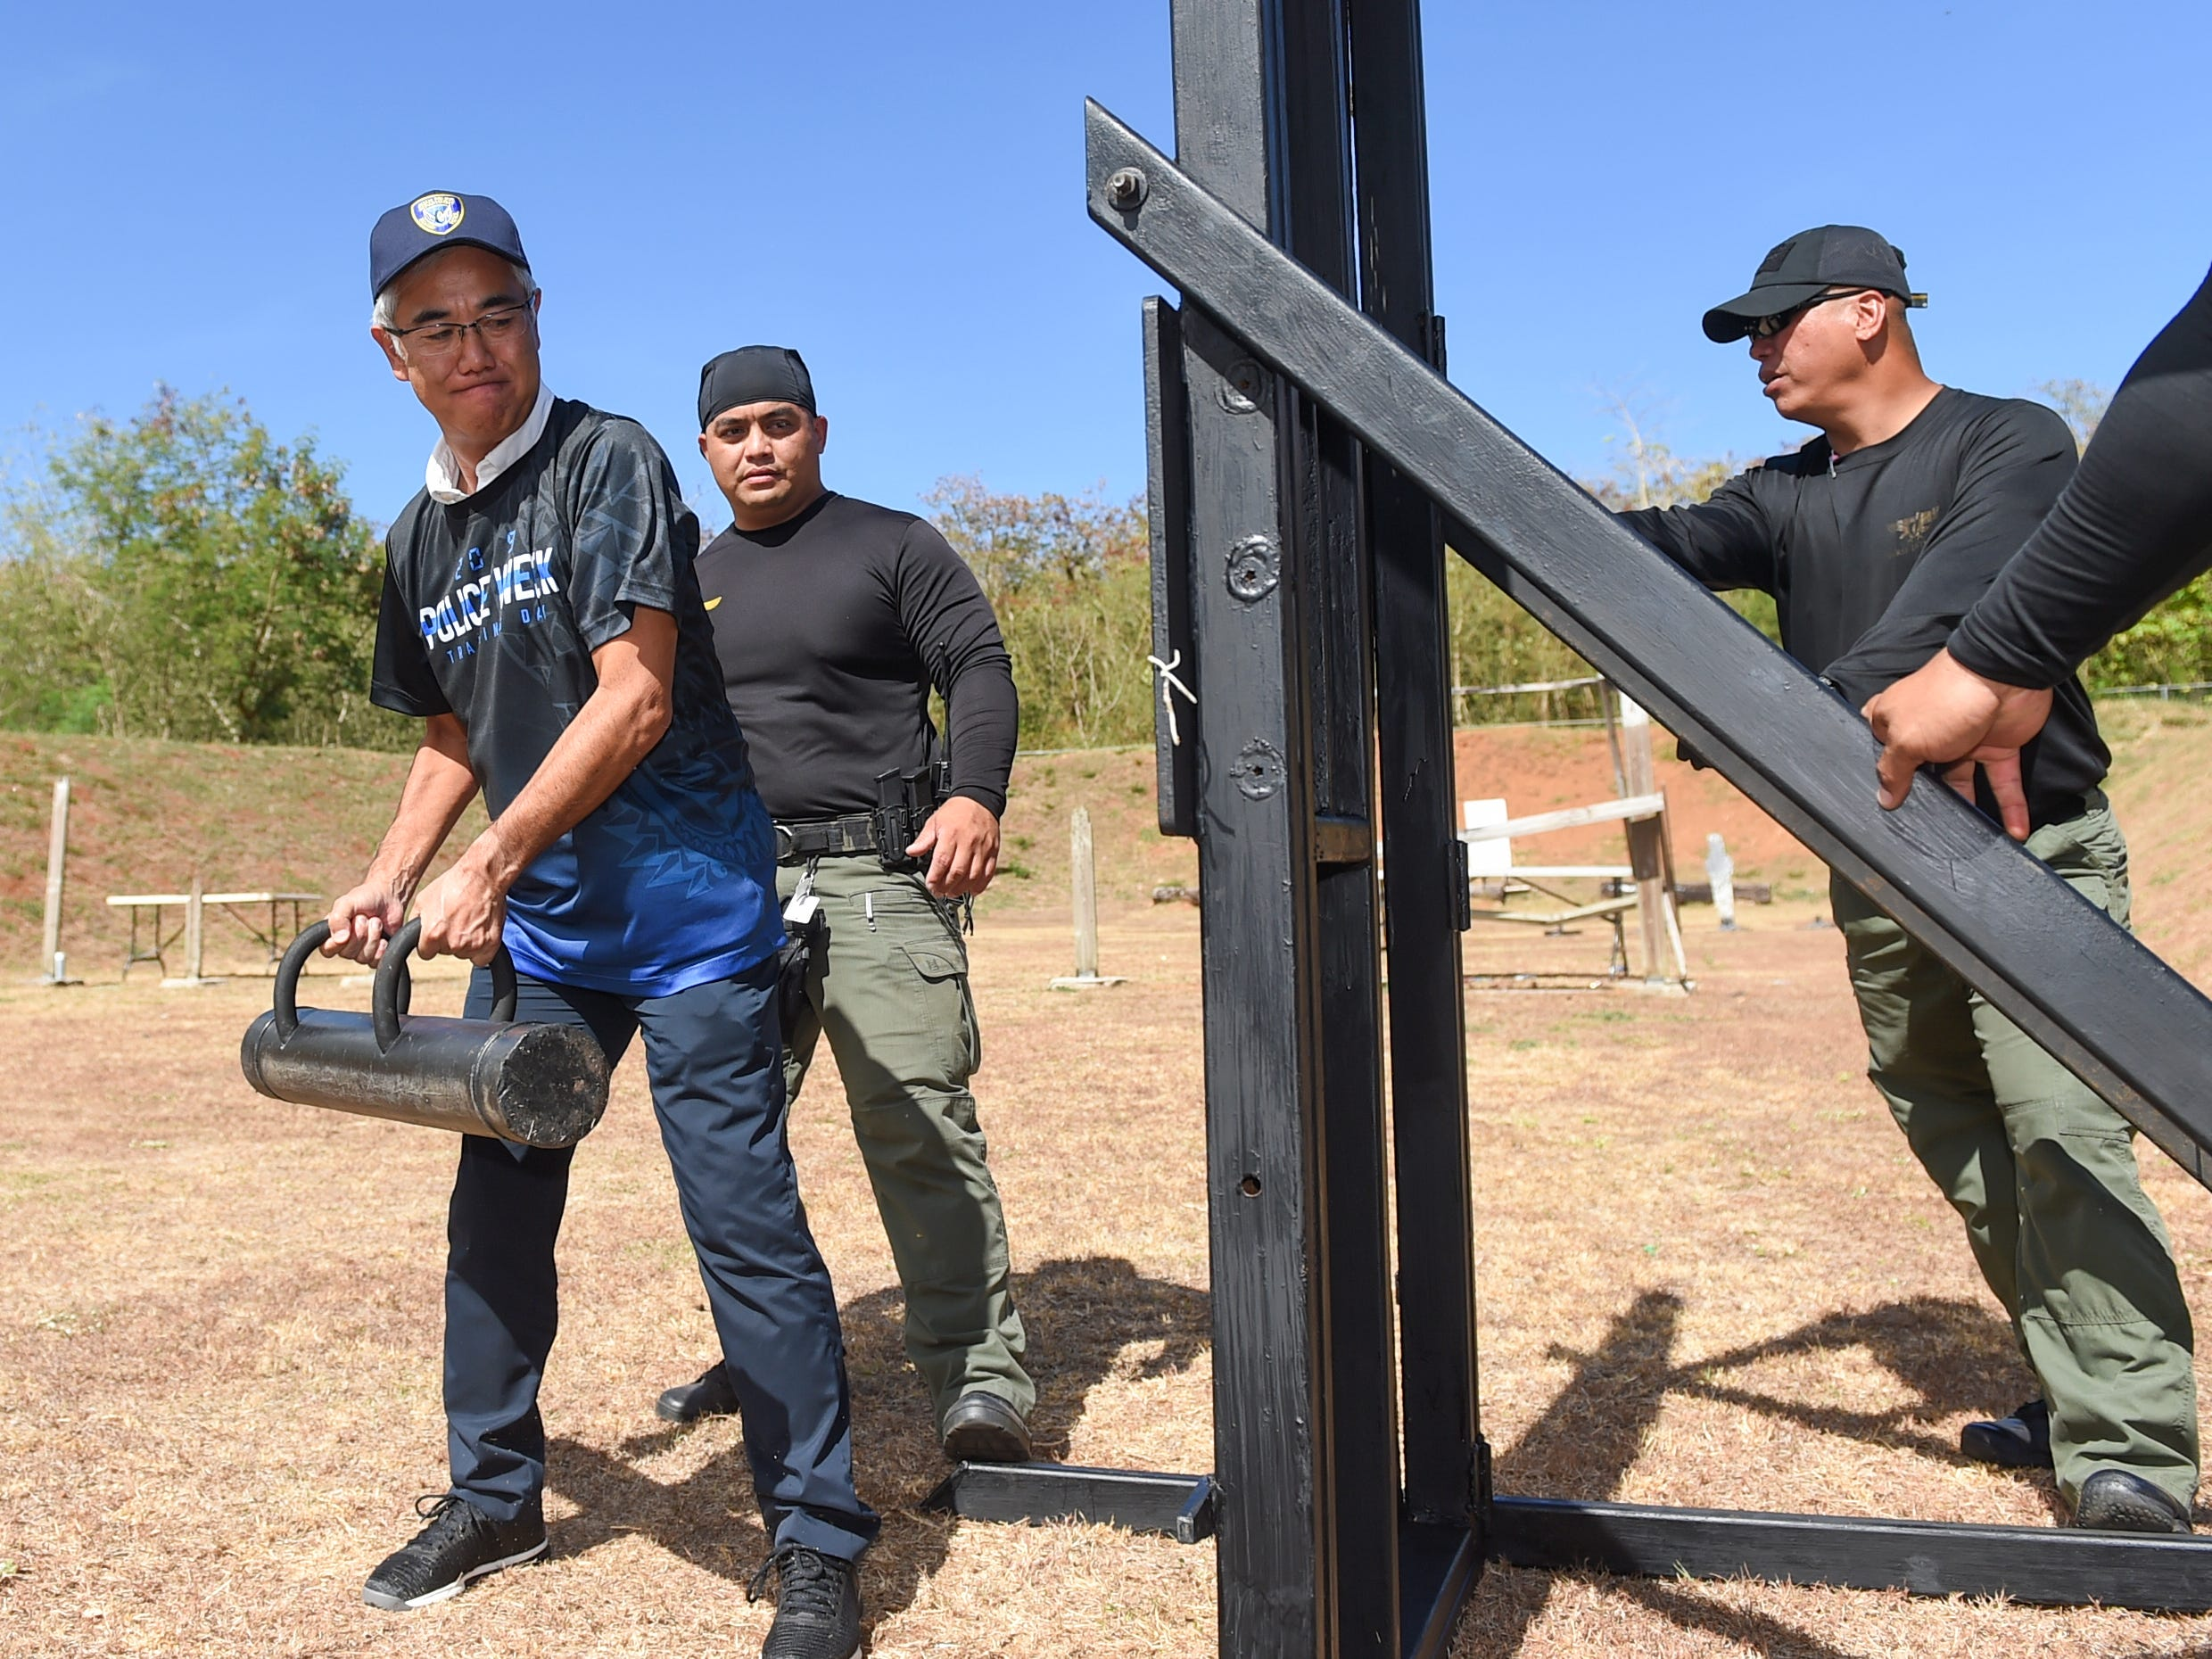 """Mitsuo """"Mike"""" Sato, P.H.R. Ken Micronesia, Inc. president, uses a battering ram while participating in a door breaching demonstration at the Guam Police Department's shooting range on the Guam Community College campus in Mangilao, May 14, 2019."""